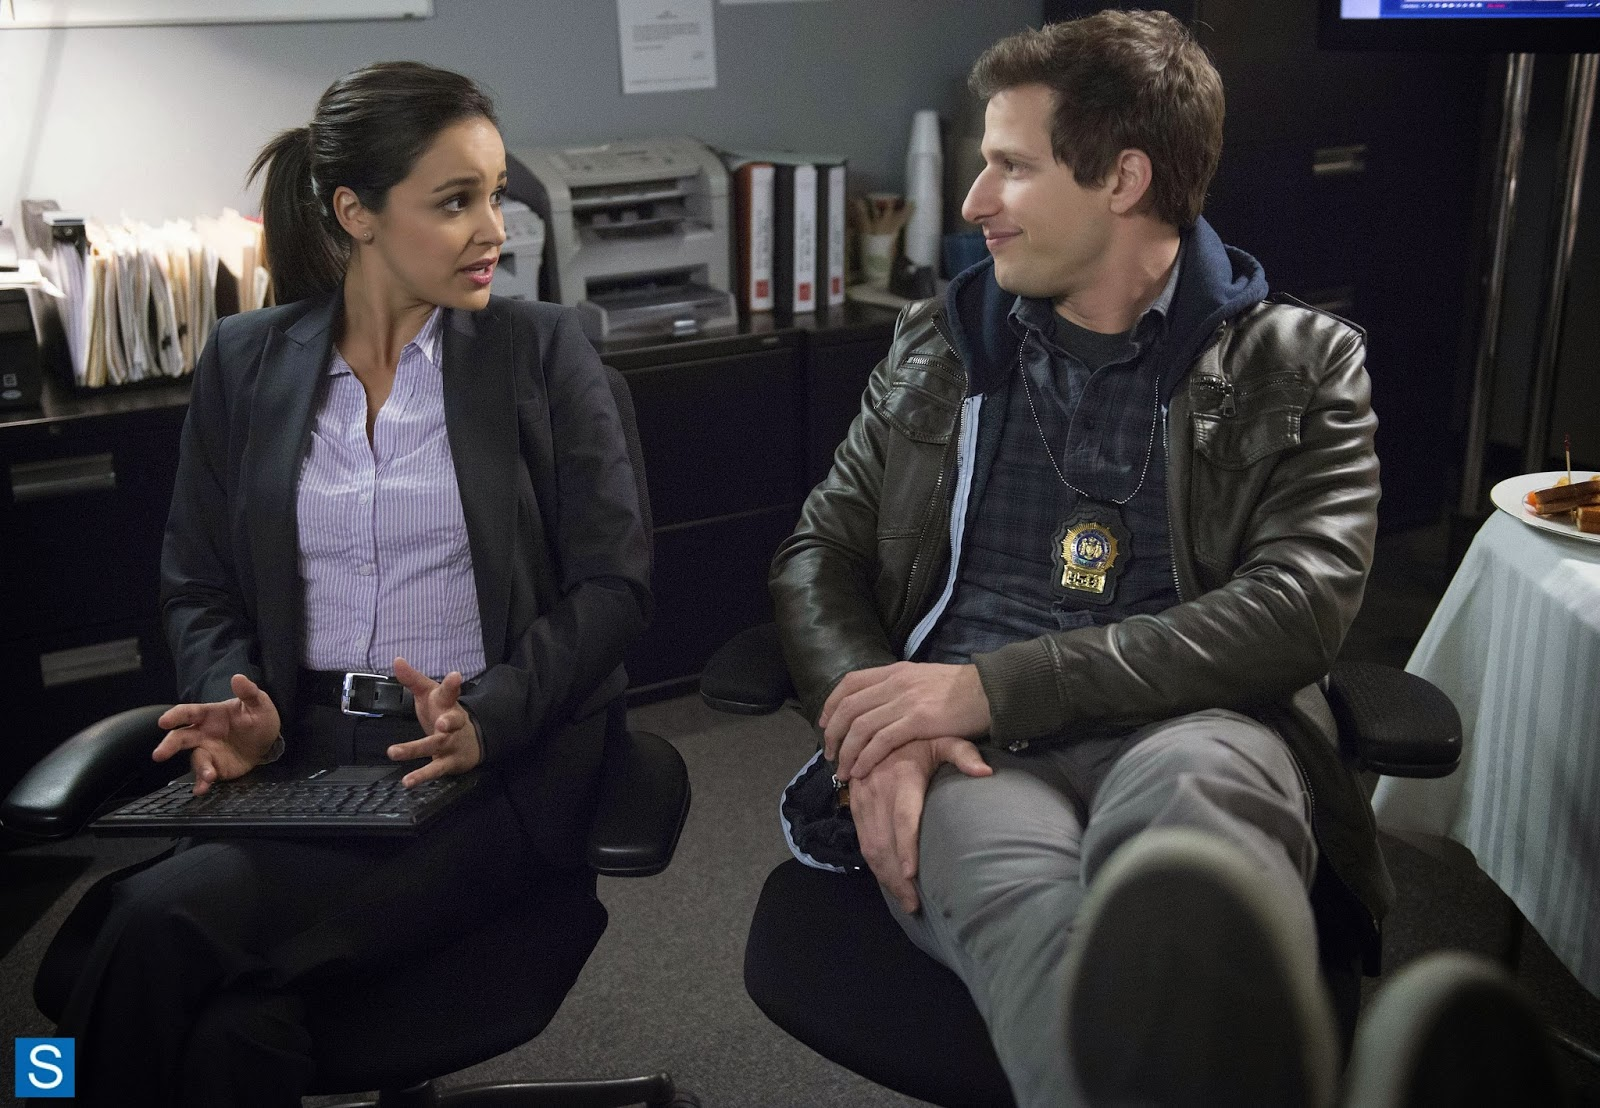 Operation: Broken Feather | Brooklyn Nine-Nine Wiki | FANDOM powered